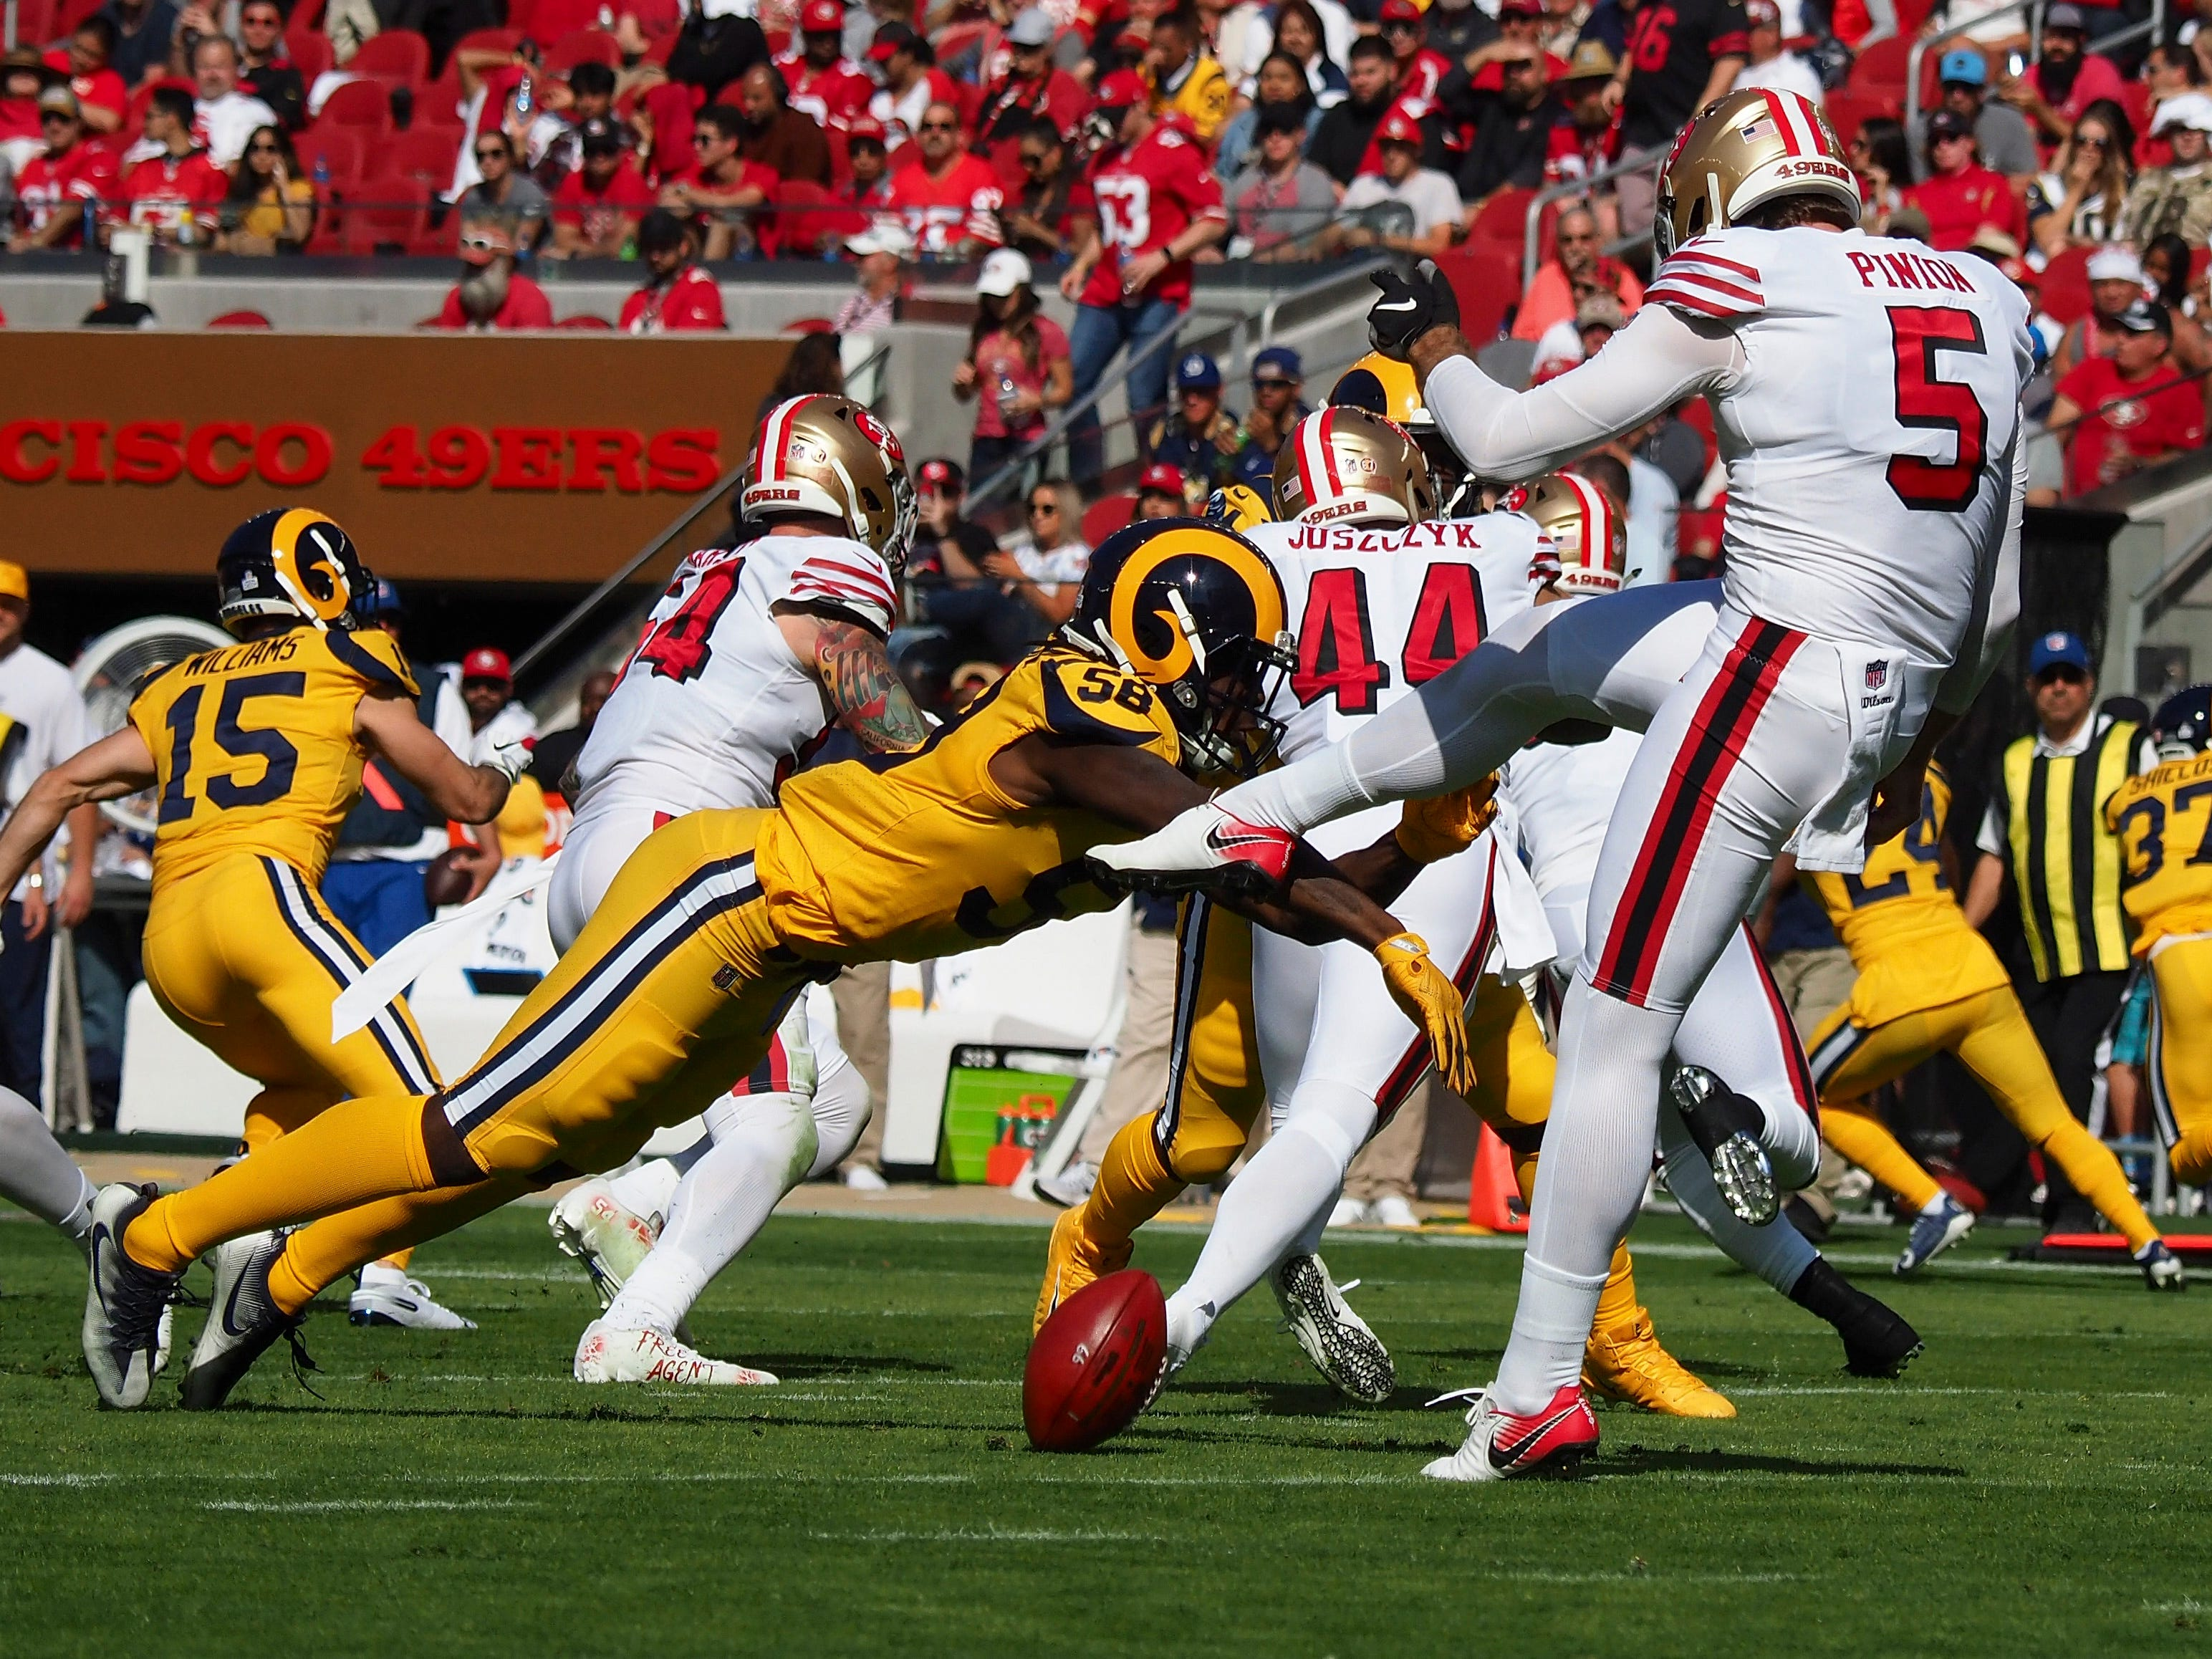 Week 7: Los Angeles Rams linebacker Cory Littleton blocks a punt by San Francisco 49ers punter Bradley Pinion during the second quarter at Levi's Stadium. The Rams won the game, 39-10.